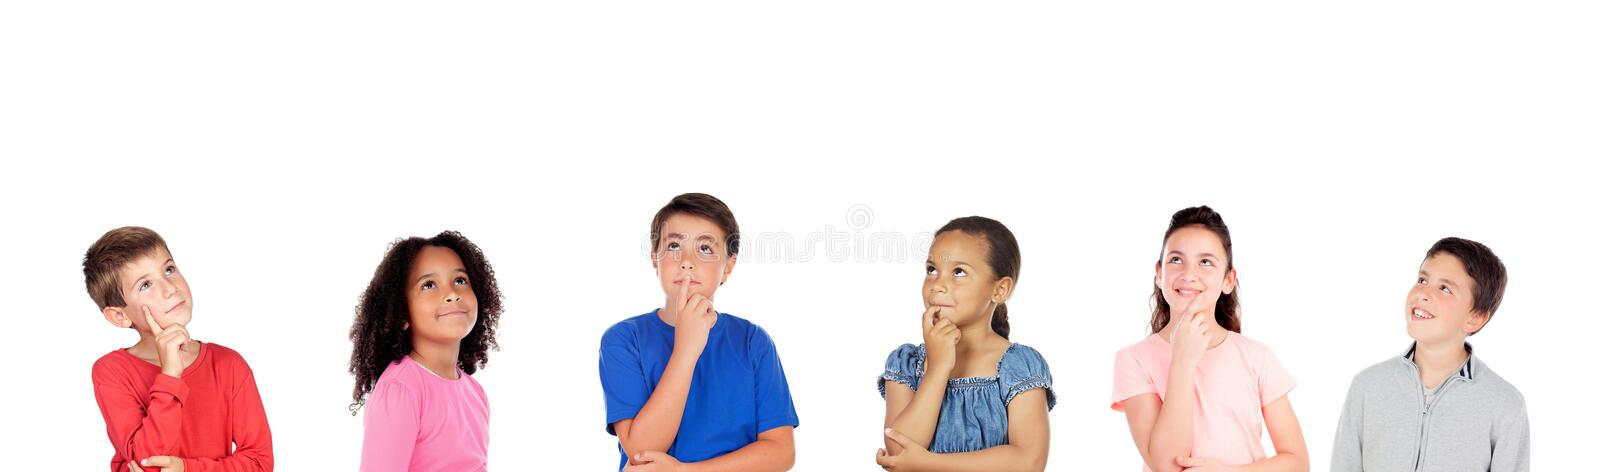 Pensive children thinking about something royalty free stock image